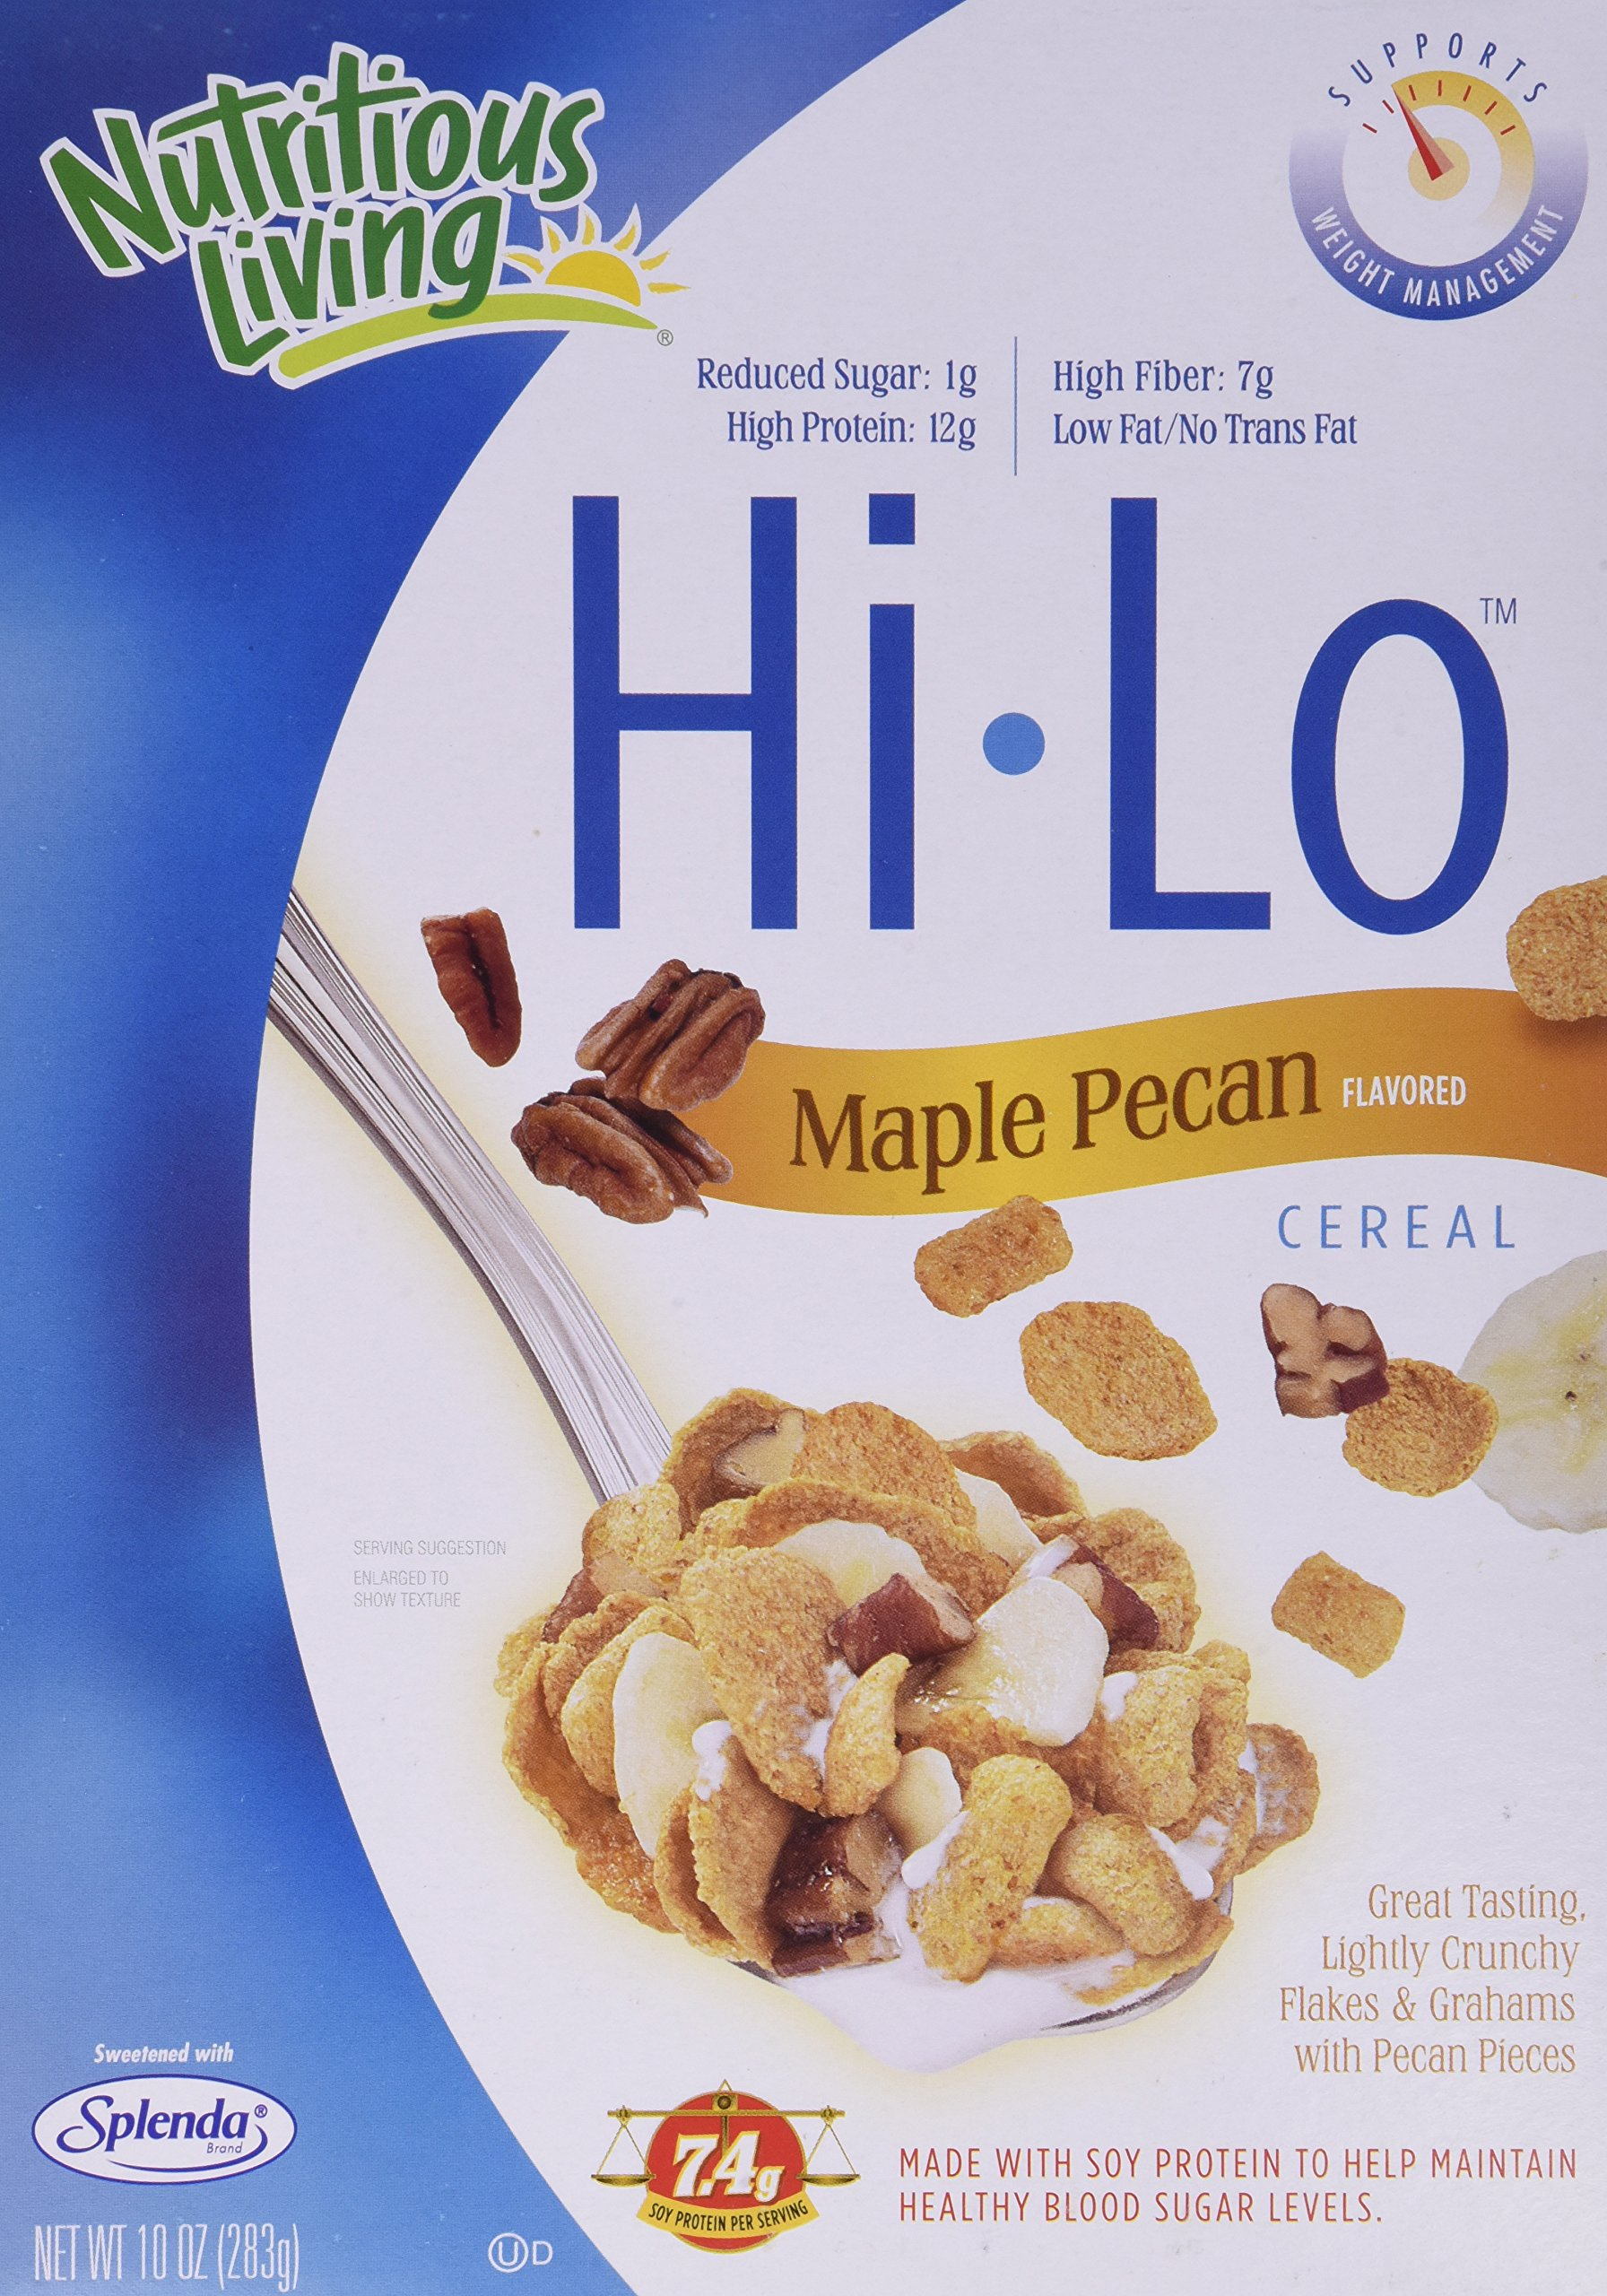 Nutritious Living Hi-Lo Maple Pecan Cereal, 10-Ounce Units (Pack of 6) by Nutritious Living